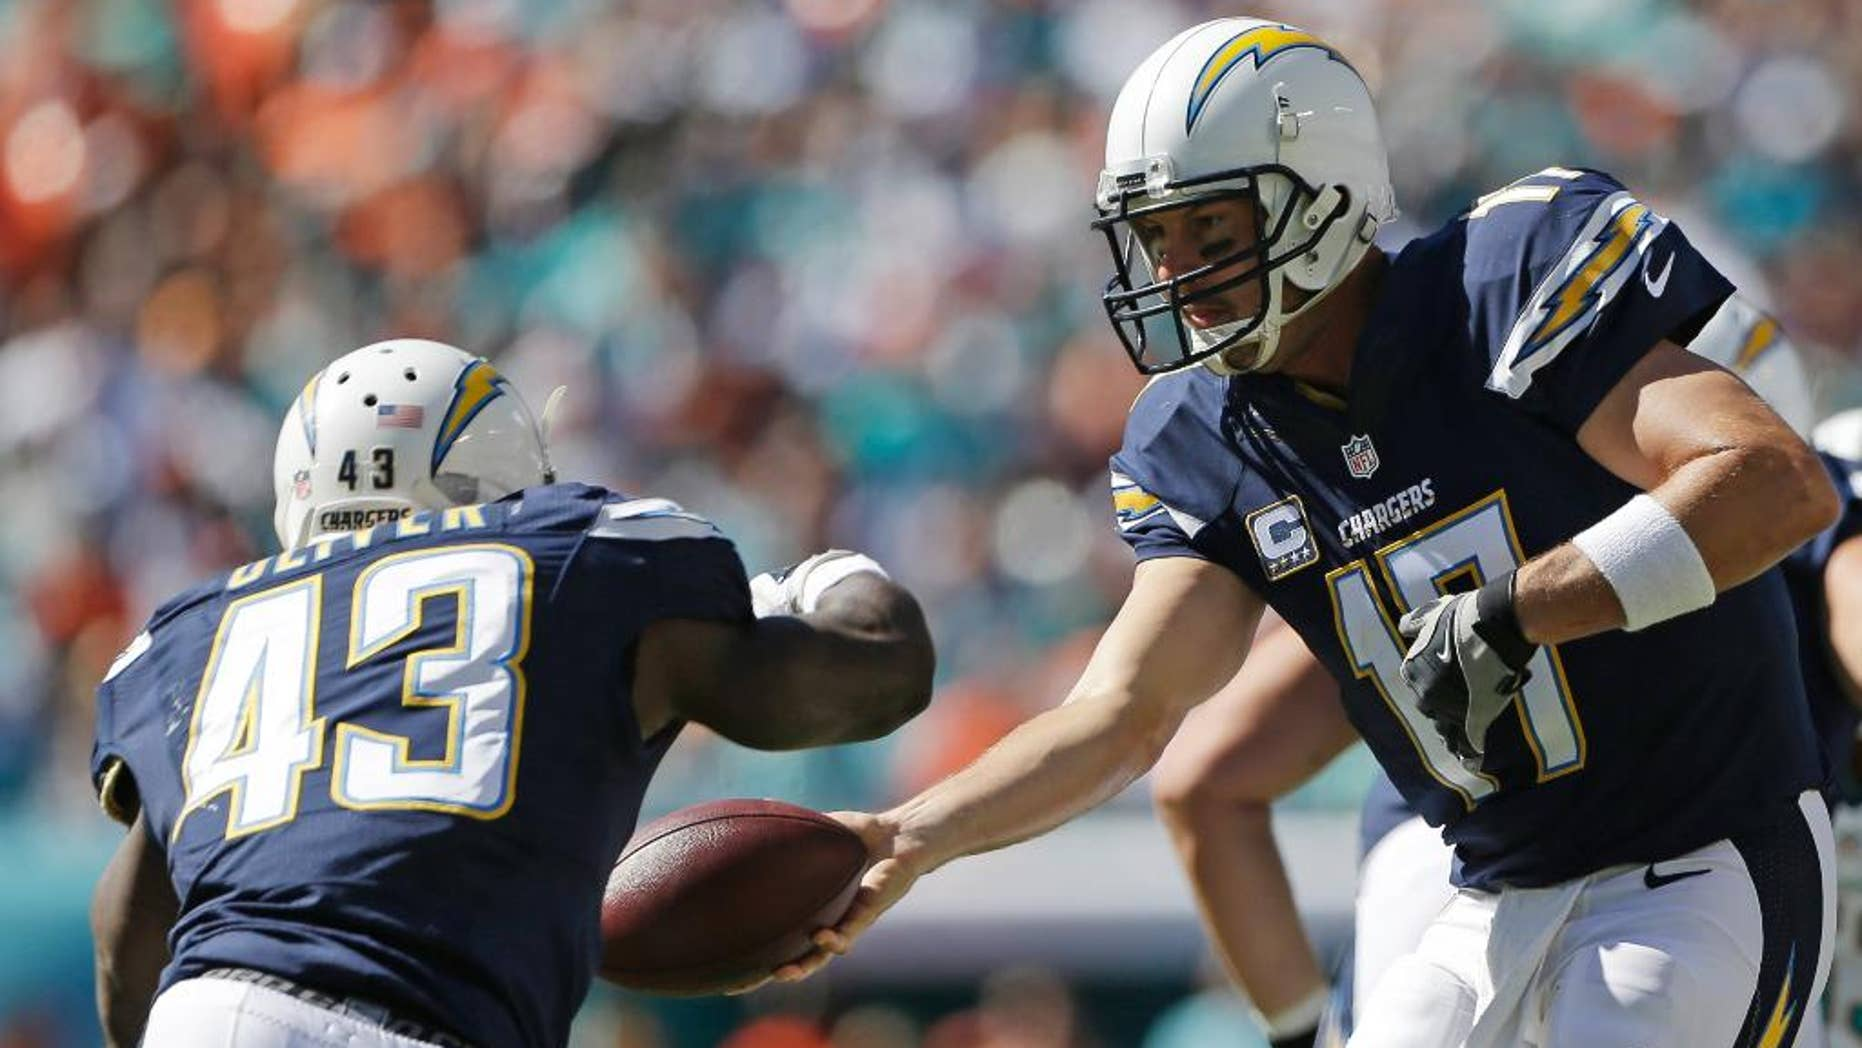 San Diego Chargers quarterback Philip Rivers (17) hands the ball to running back Branden Oliver (43 ) during the first half of an NFL football game against the Miami Dolphins, Sunday, Nov. 2, 2014, in Miami Gardens, Fla. (AP Photo/Alan Diaz)